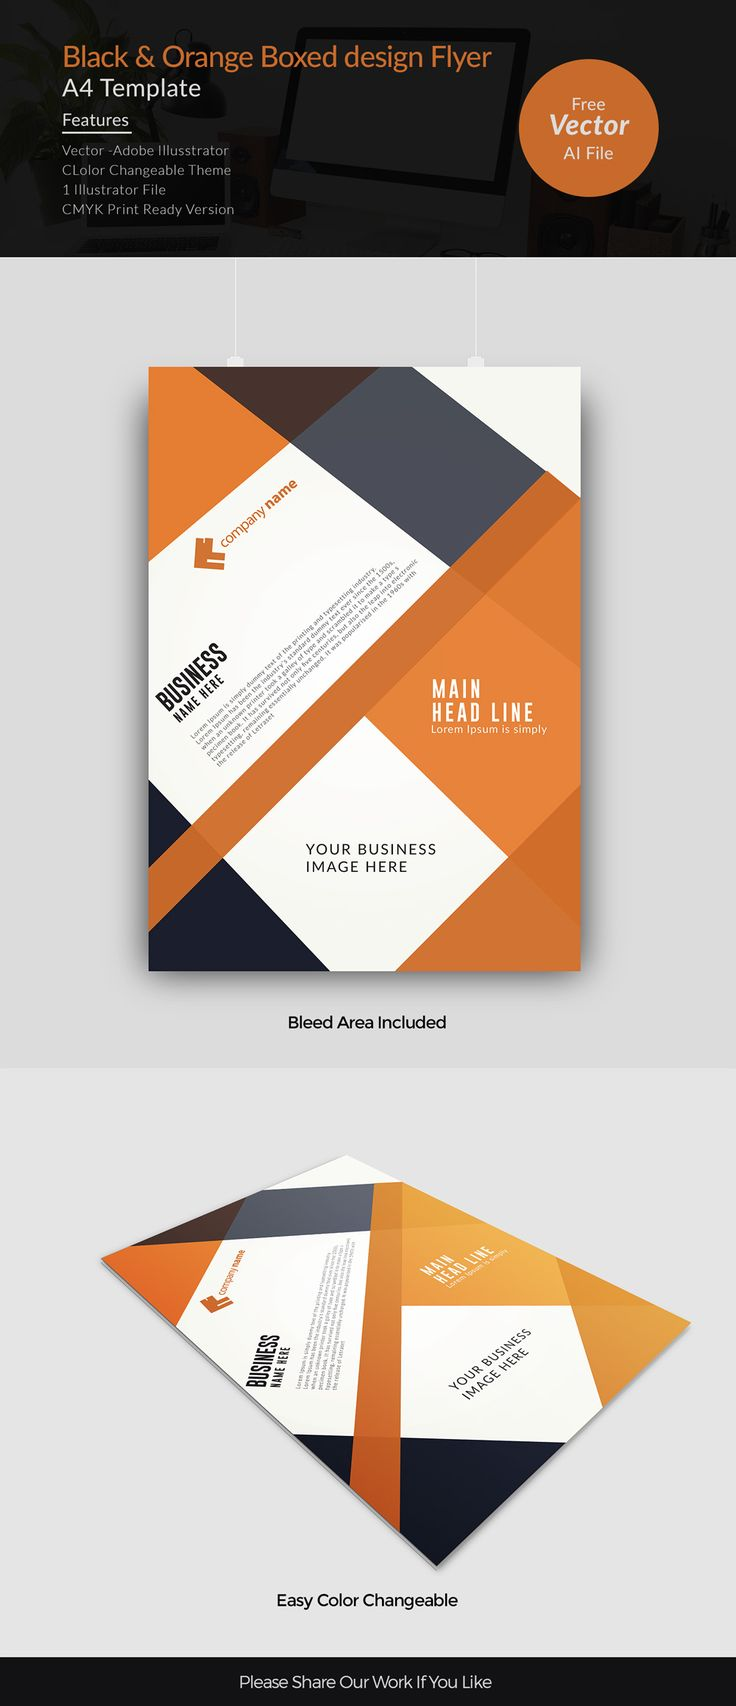 black and orange boxed design corporate flyer free vector